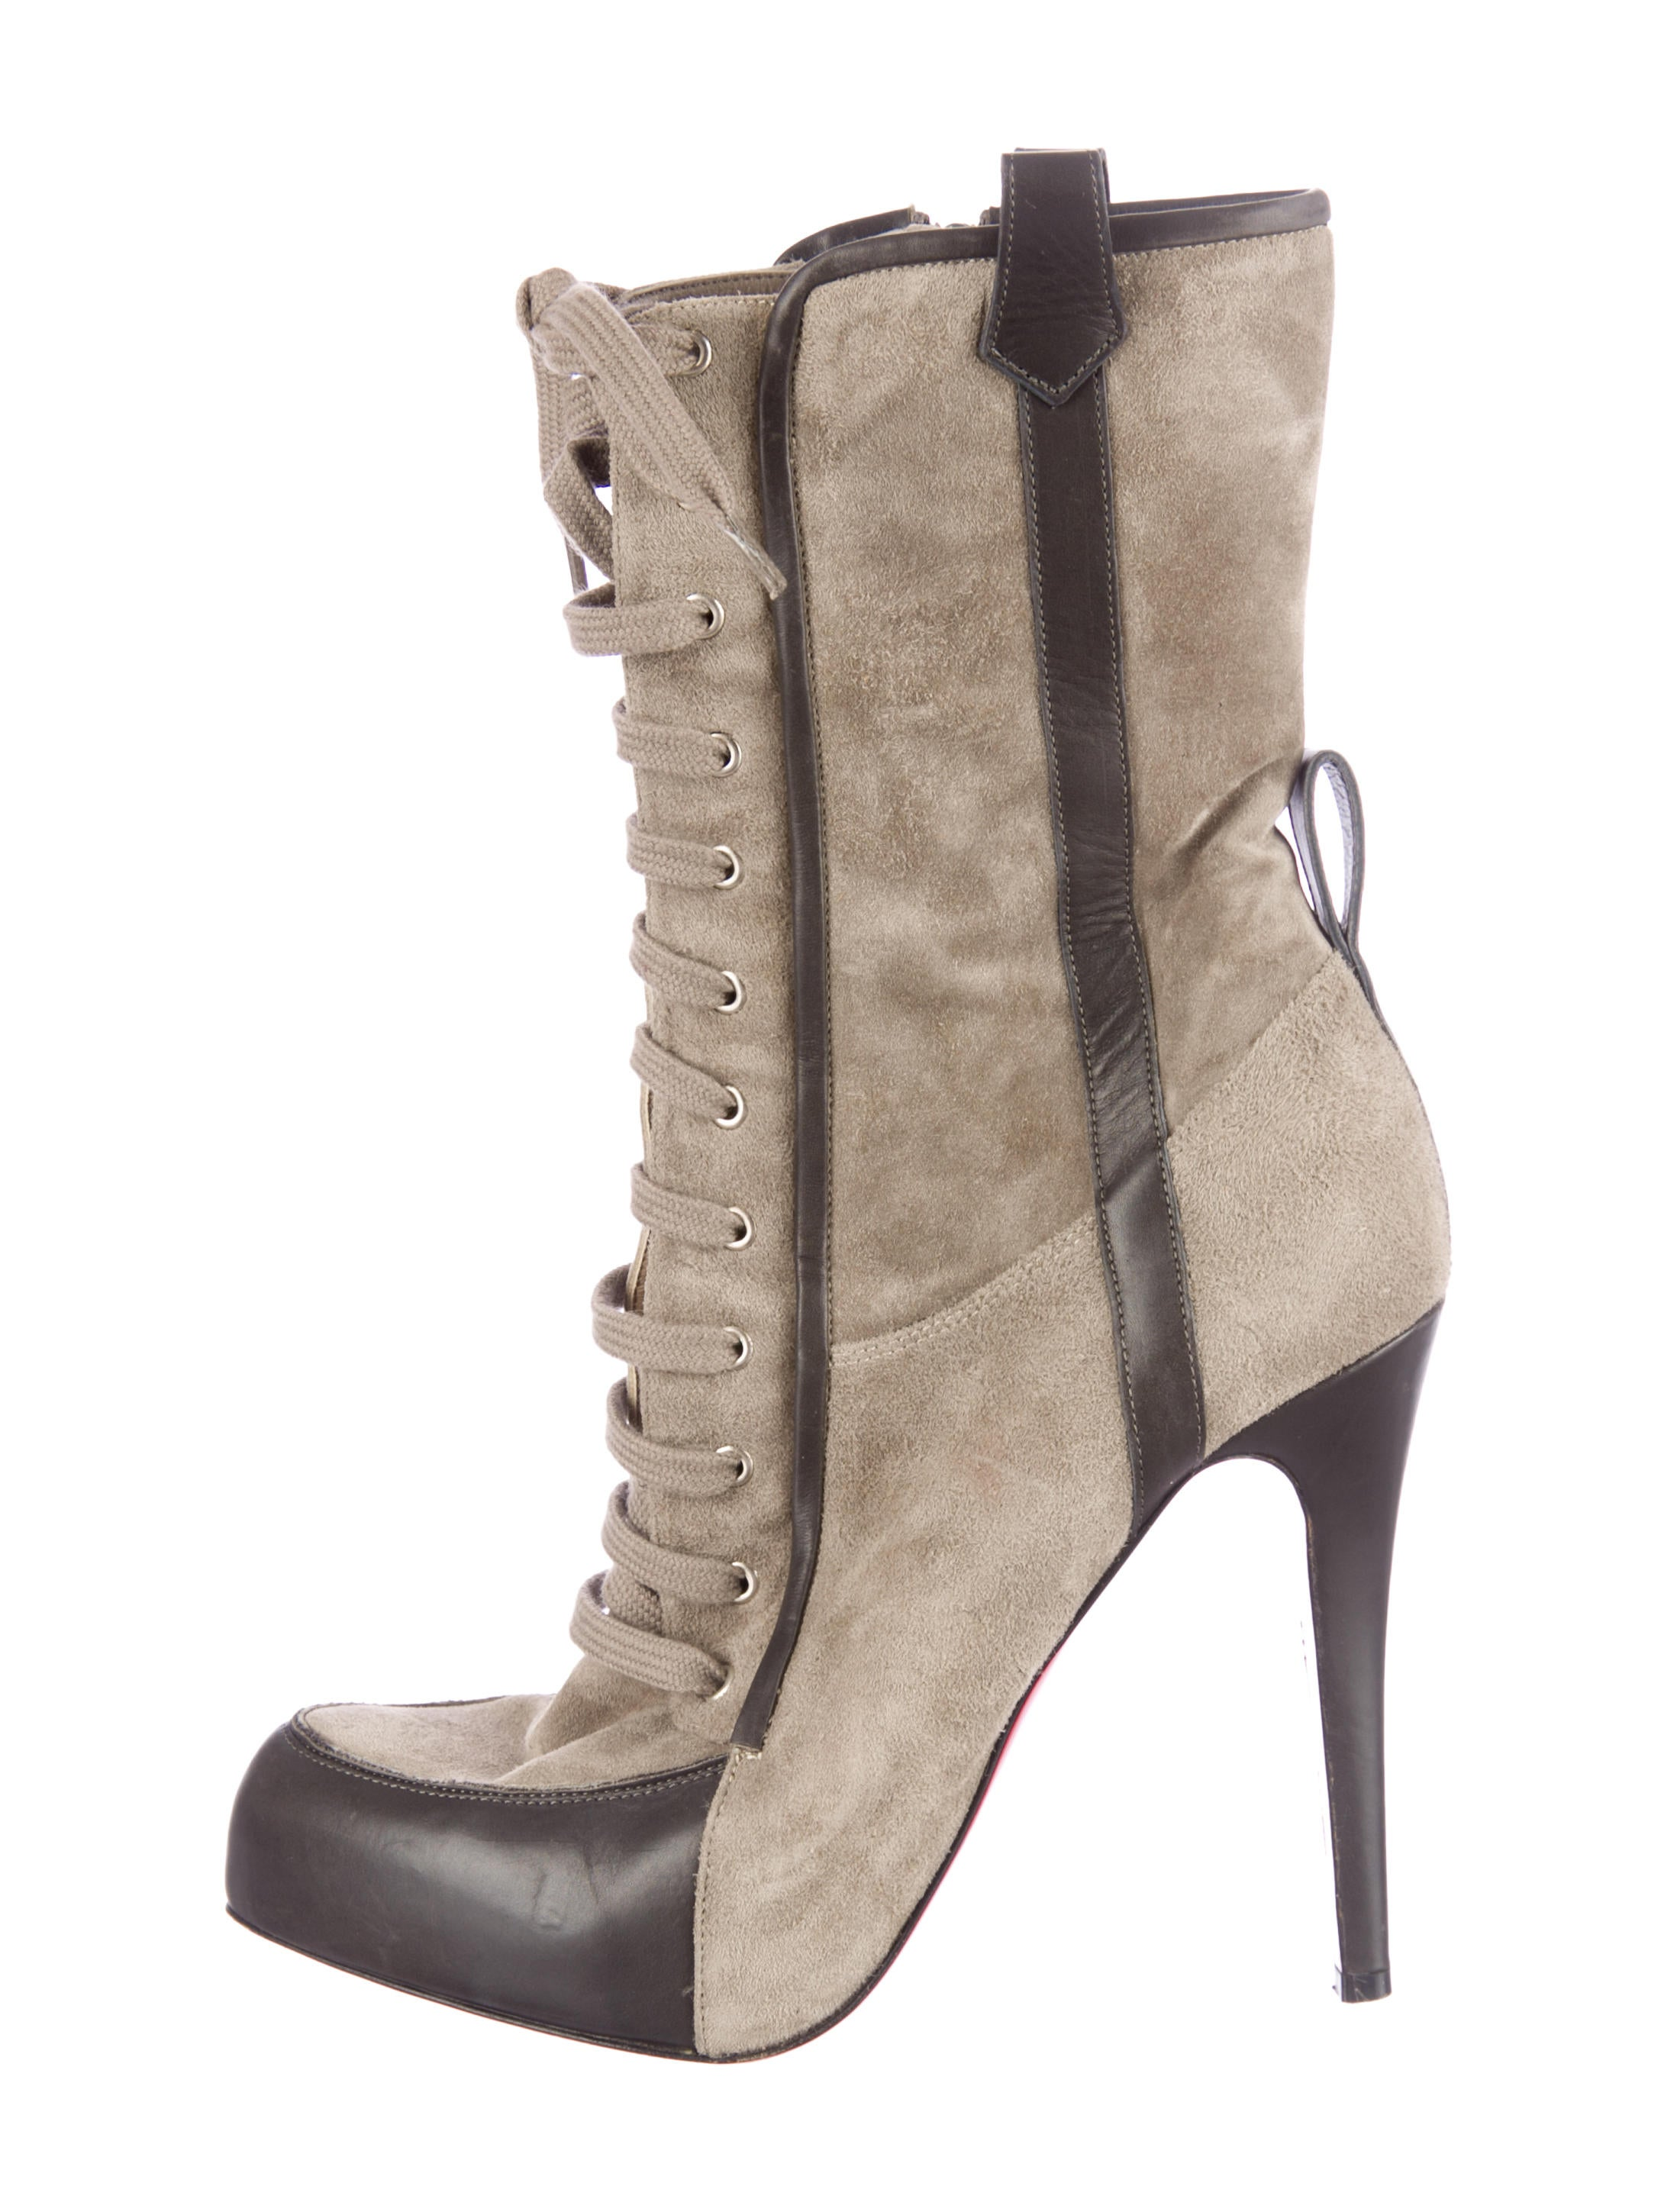 christian louboutin suede ankle boots Grey pointed toes - Bbridges